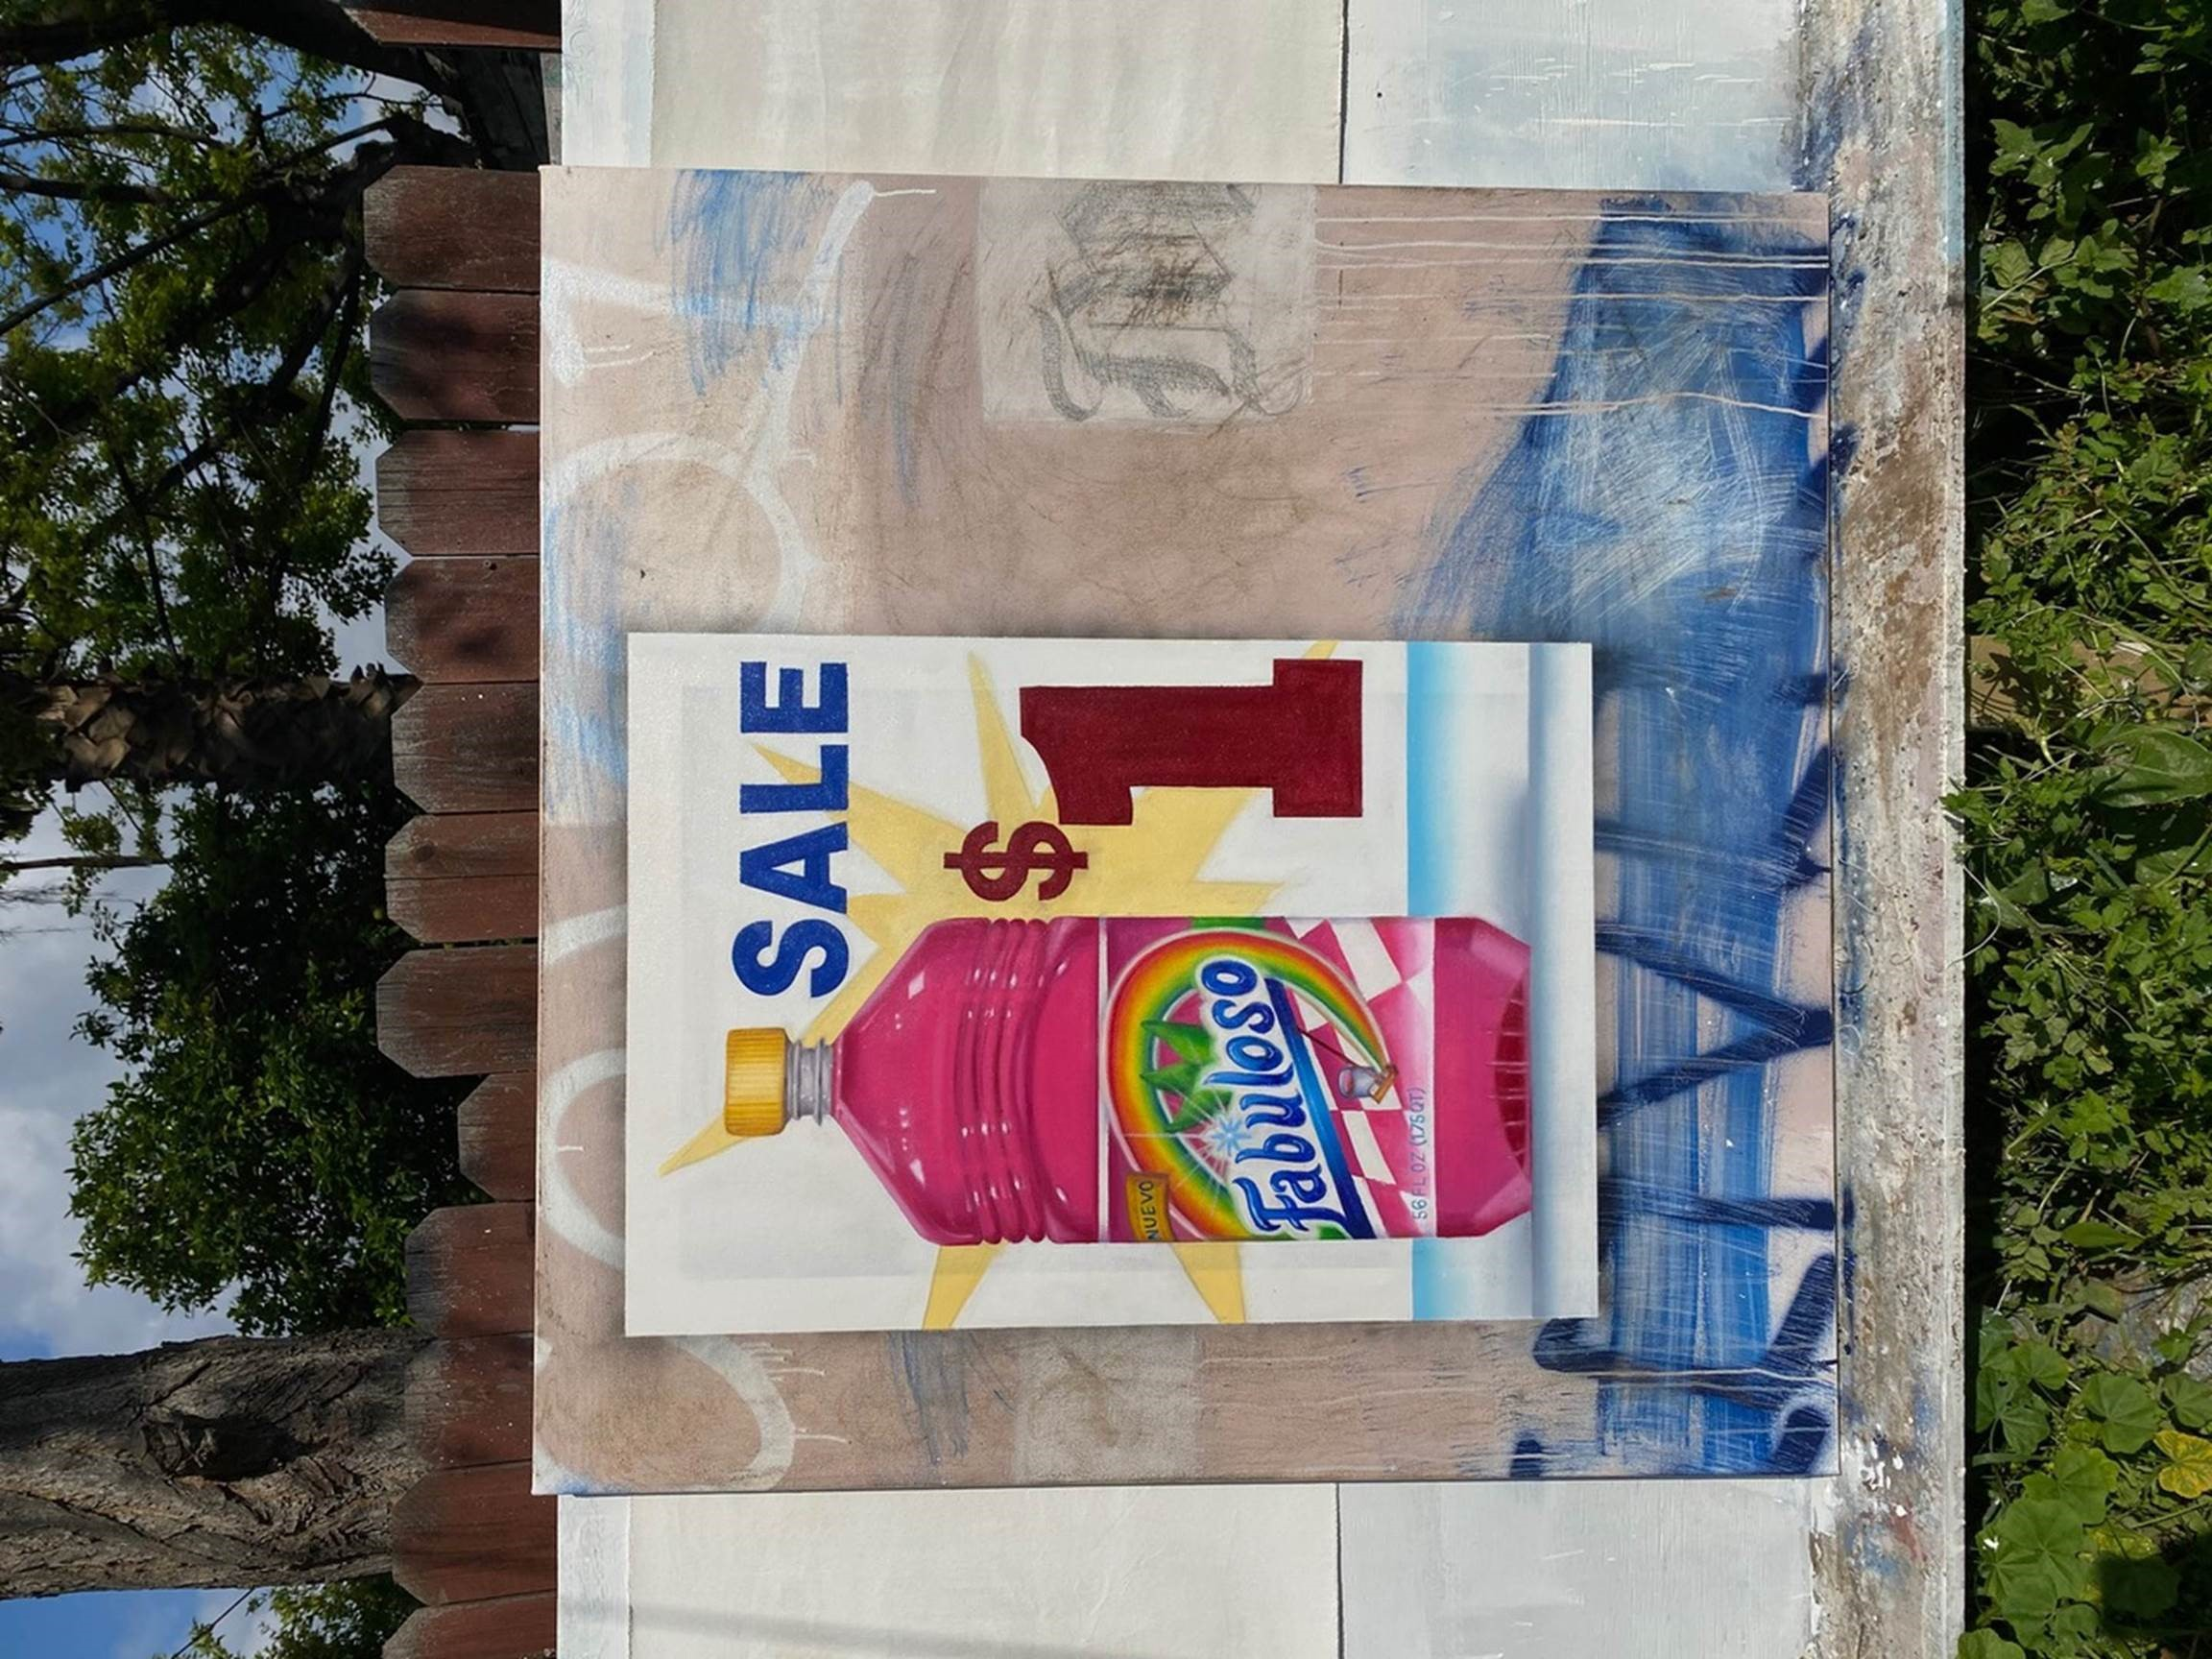 A painting of a bottle of pink cleaning agent